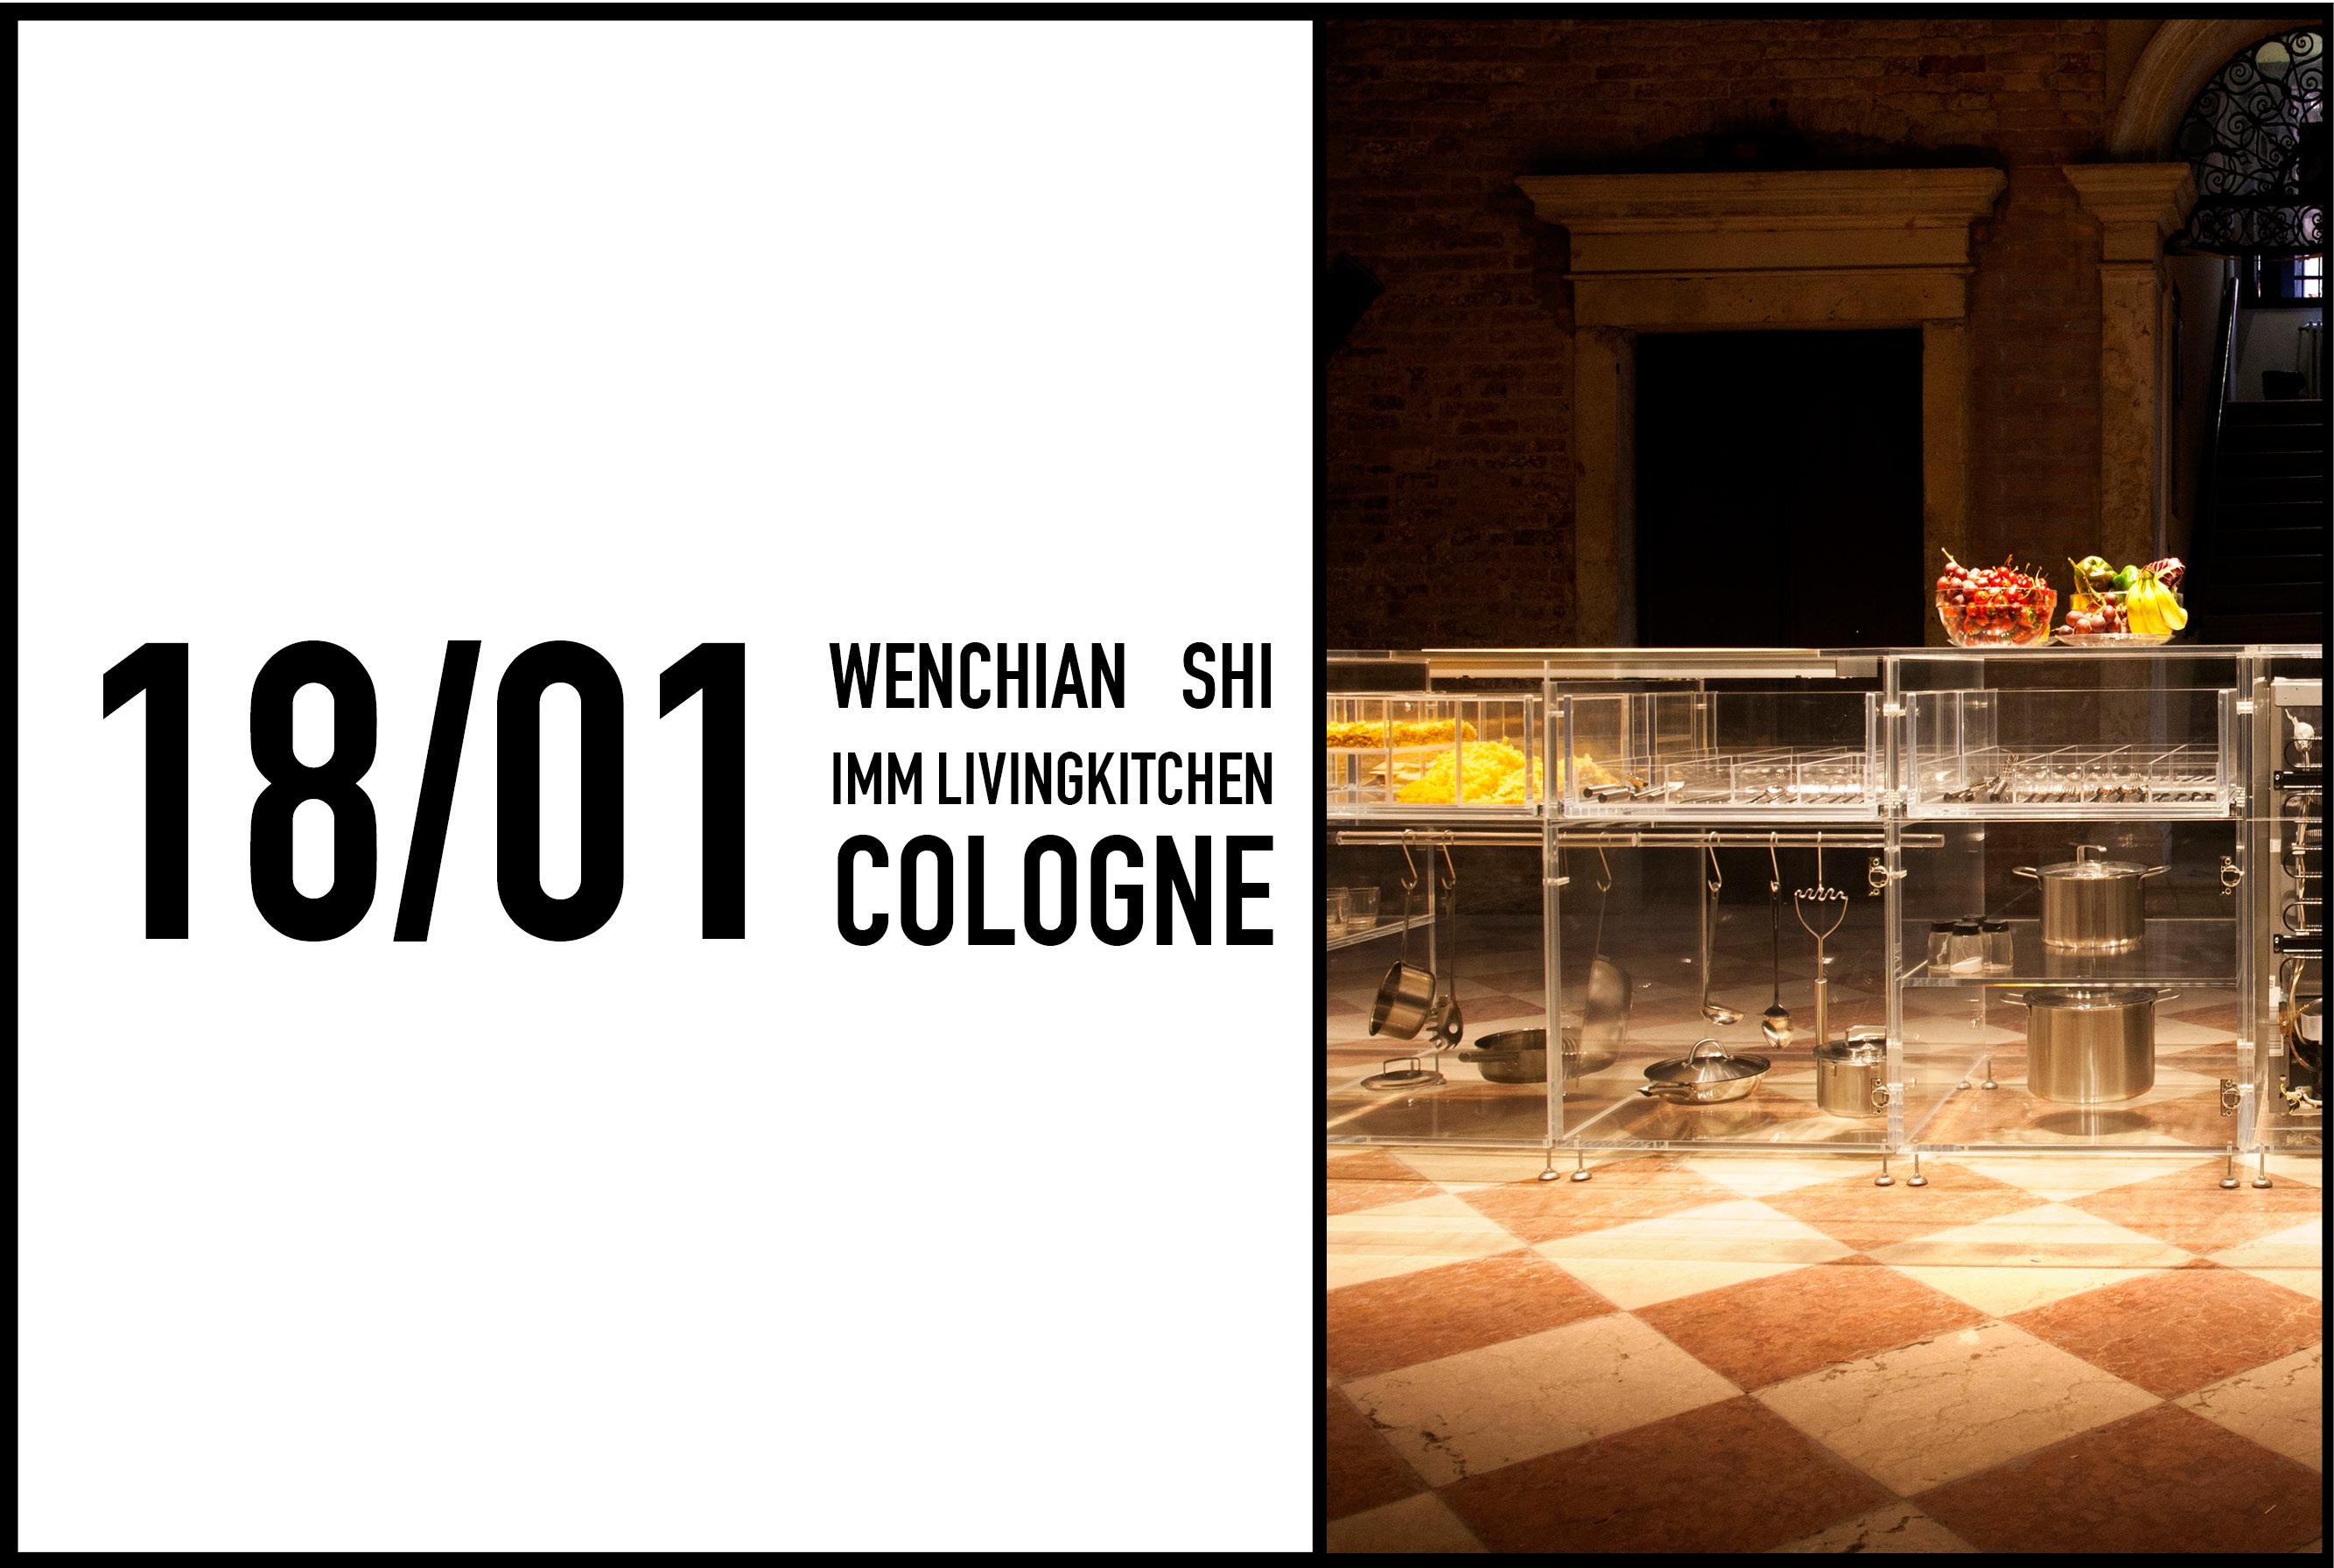 Wenchian Shi to speak about Infinity Kitchen at IMM LvingKitchen in Cologne, 18 January 2017